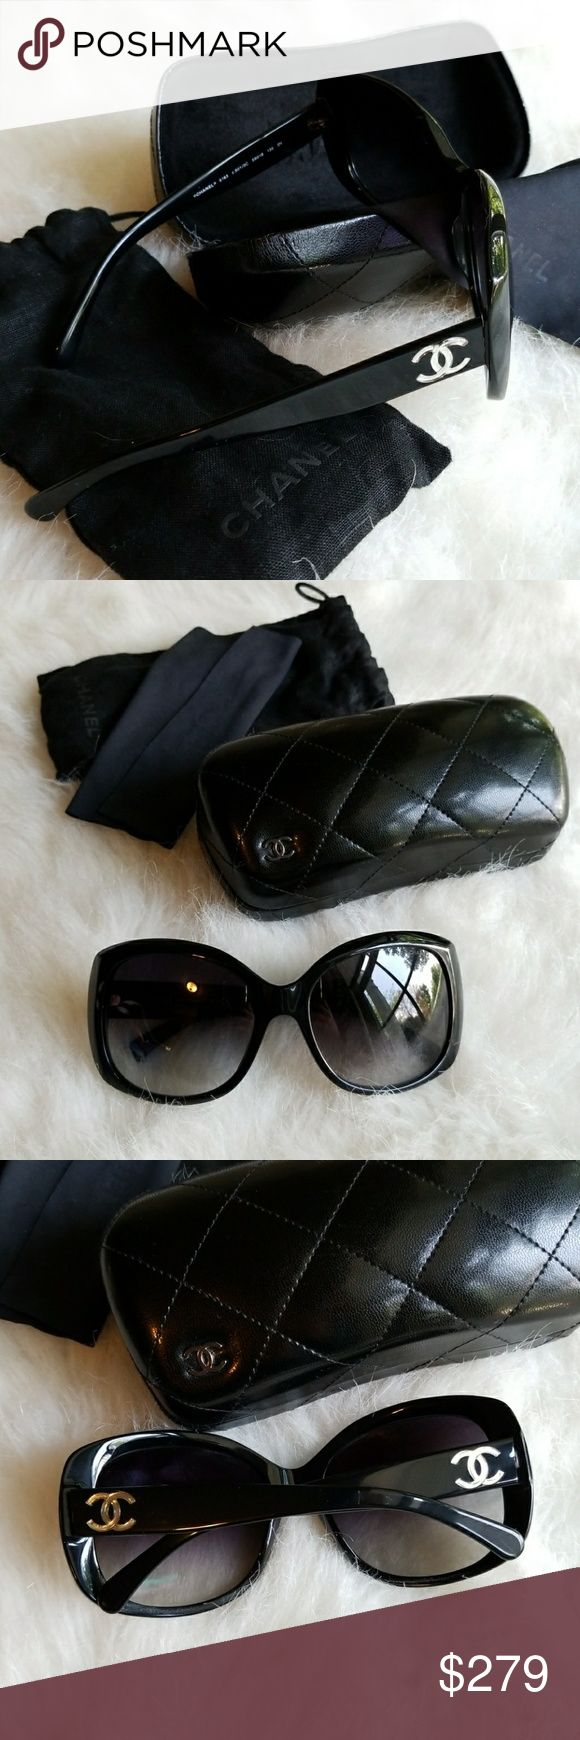 Chanel sunglasses Gorgeous black oversized sunglasses from Chanel. 100% authentic. Box, case, dust bag, dust cloth will be included. If I can find the receipt, I'm pretty sure it's still in the box, I will include it too. Bought at the Chanel boutique in Houston for almost $400 after taxes. Still in great condition. No scratch on the lenses. Only minimal scratch I could find is on top right of frame (pic with finger) and it's not deep. Style # A40834X0108159 CHANEL Accessories Sunglasses